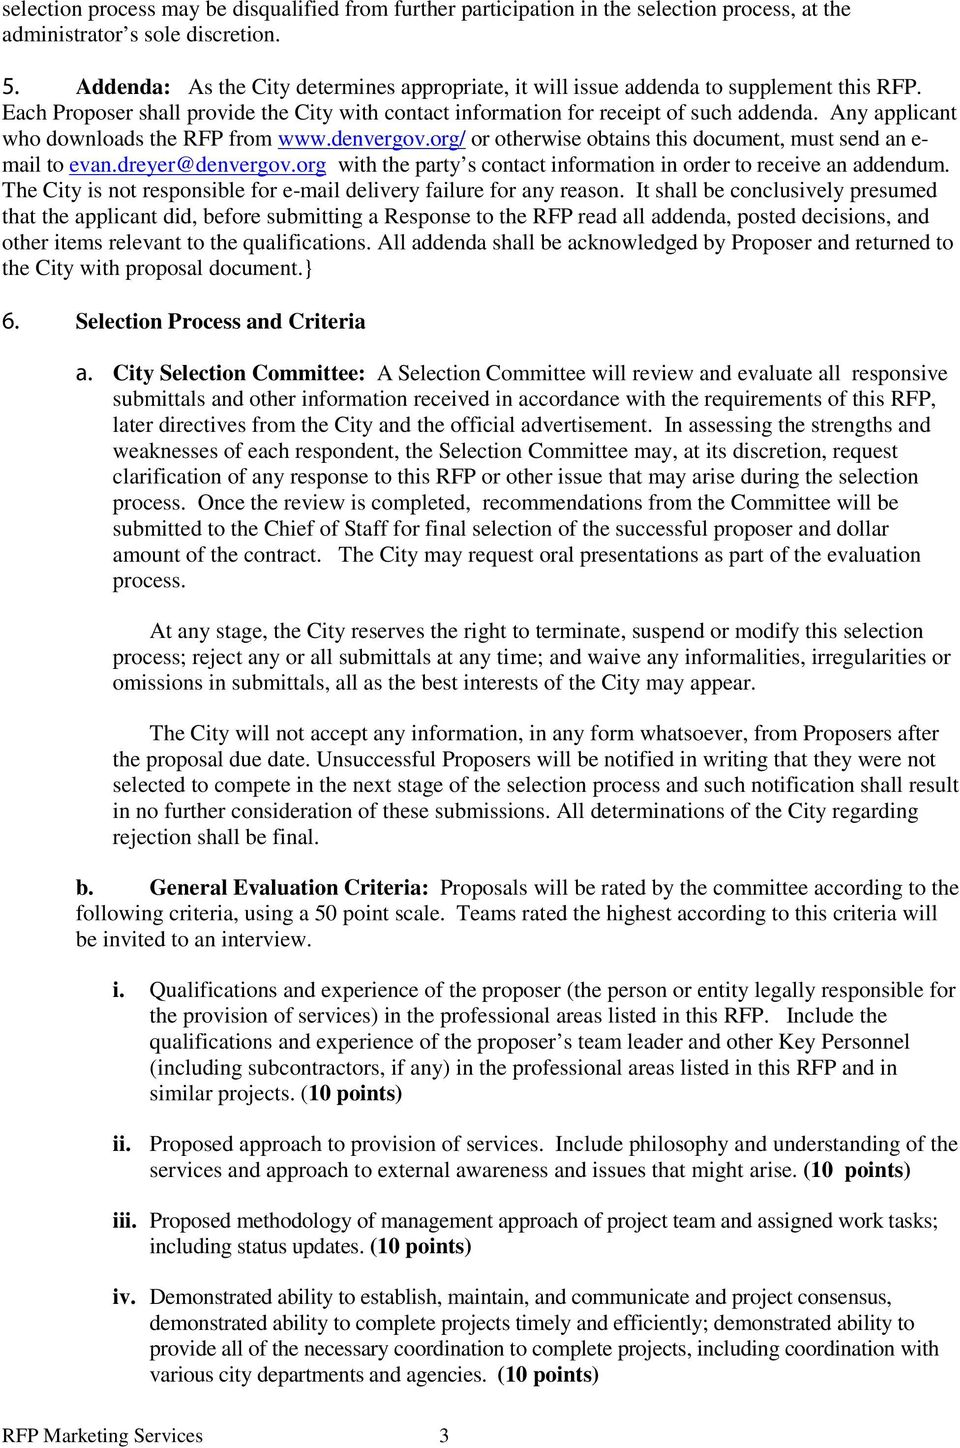 Any applicant who downloads the RFP from www.denvergov.org/ or otherwise obtains this document, must send an e- mail to evan.dreyer@denvergov.